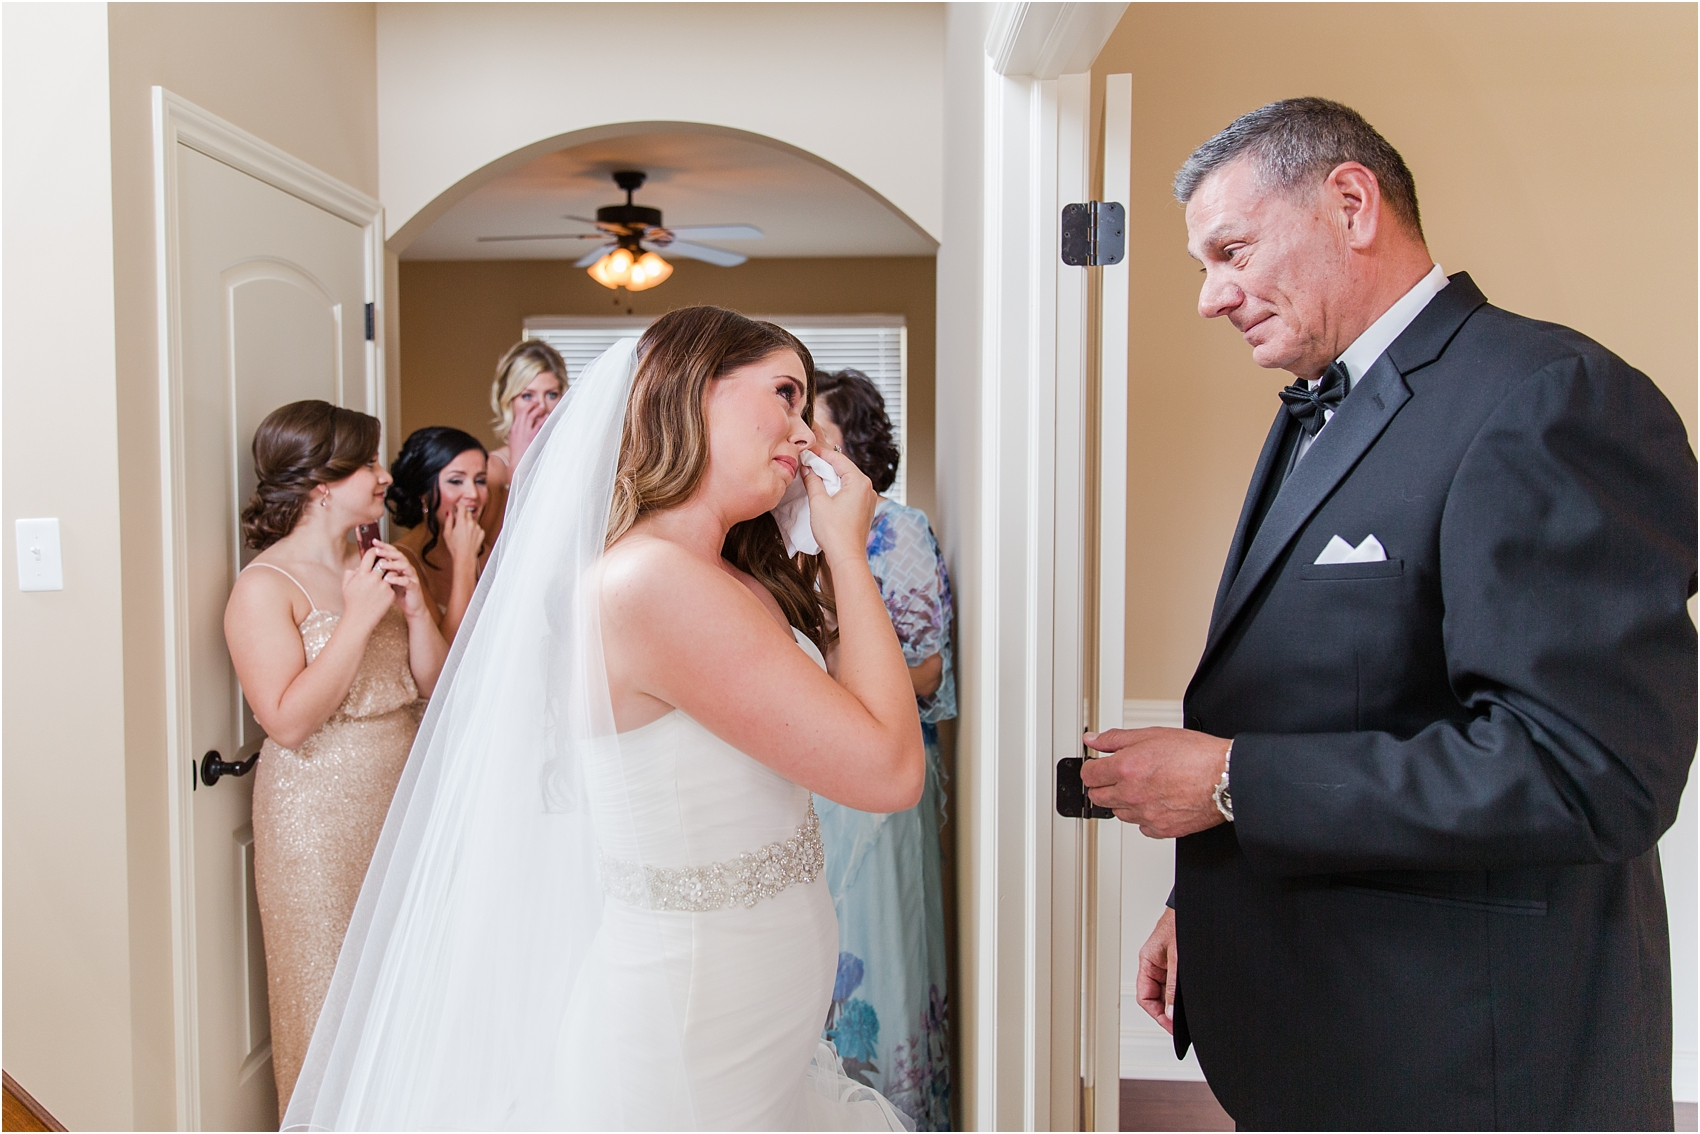 father-and-bride-share-emotional-first-look-on-wedding-day-photos-in-detroit-michigan-by-courtney-carolyn-photography_0017.jpg